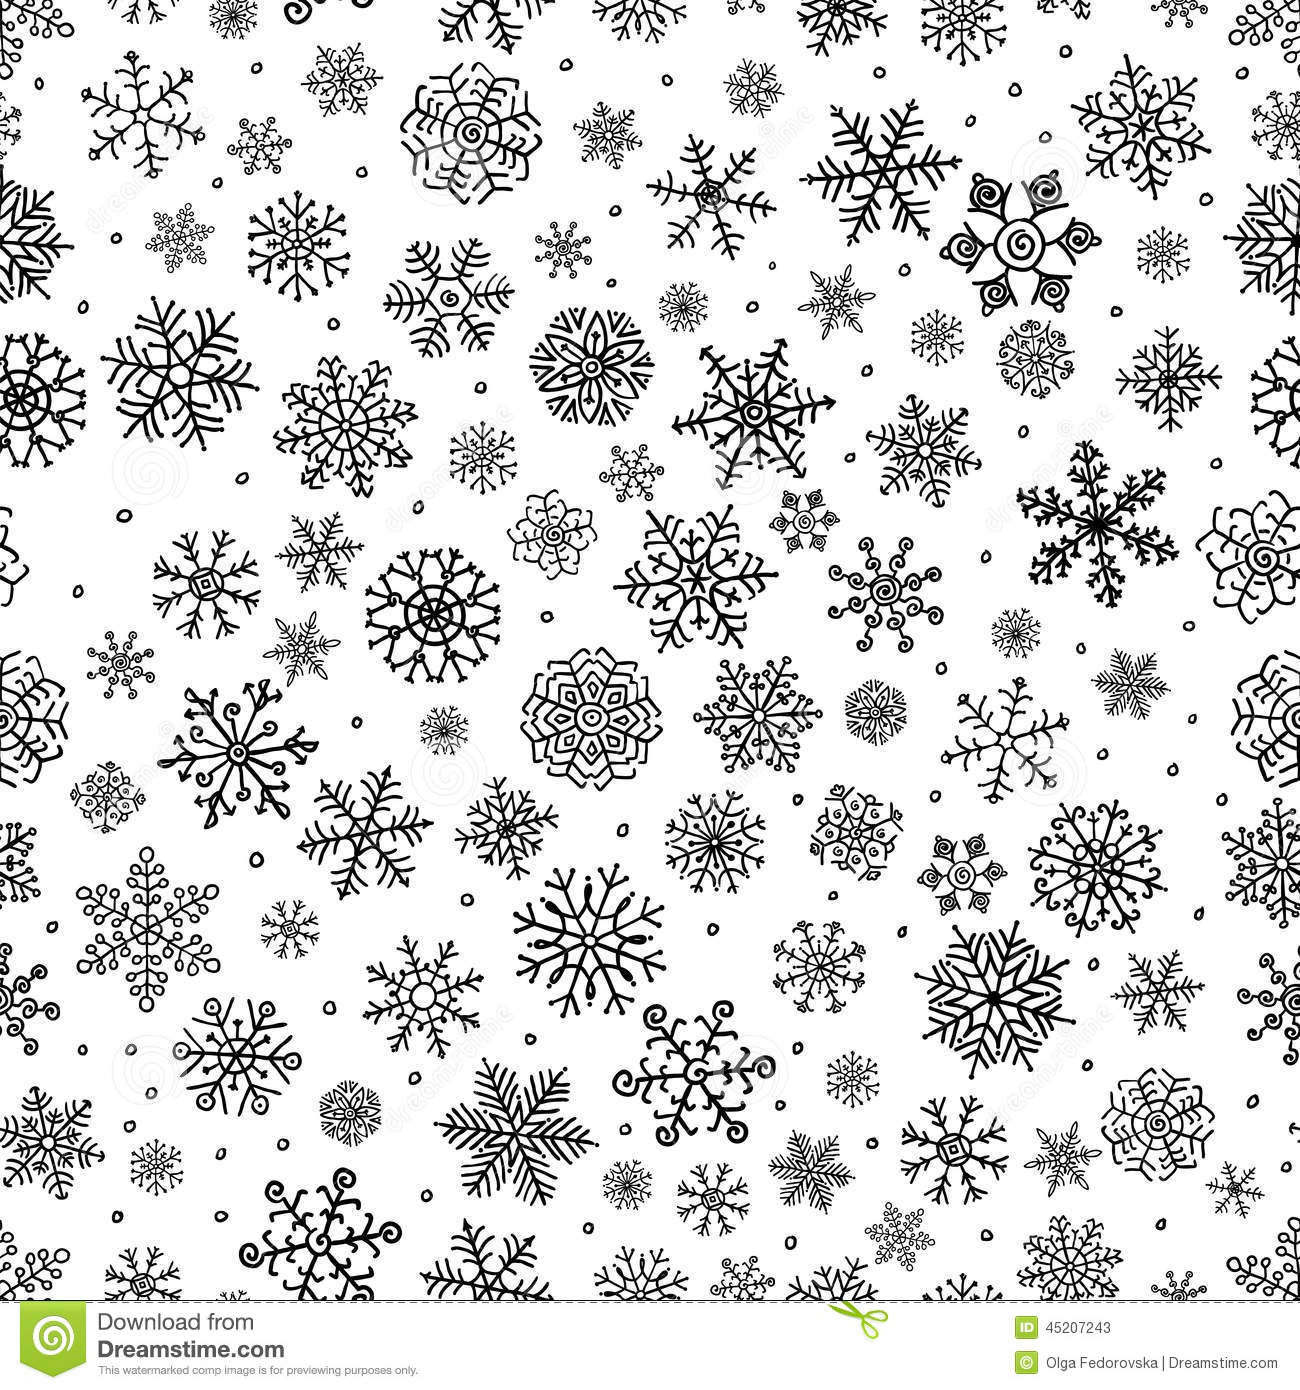 Winter Snow Flakes Doodle Seamless Background Stock Vector ... for Snow Background Clipart Black And White  585ifm